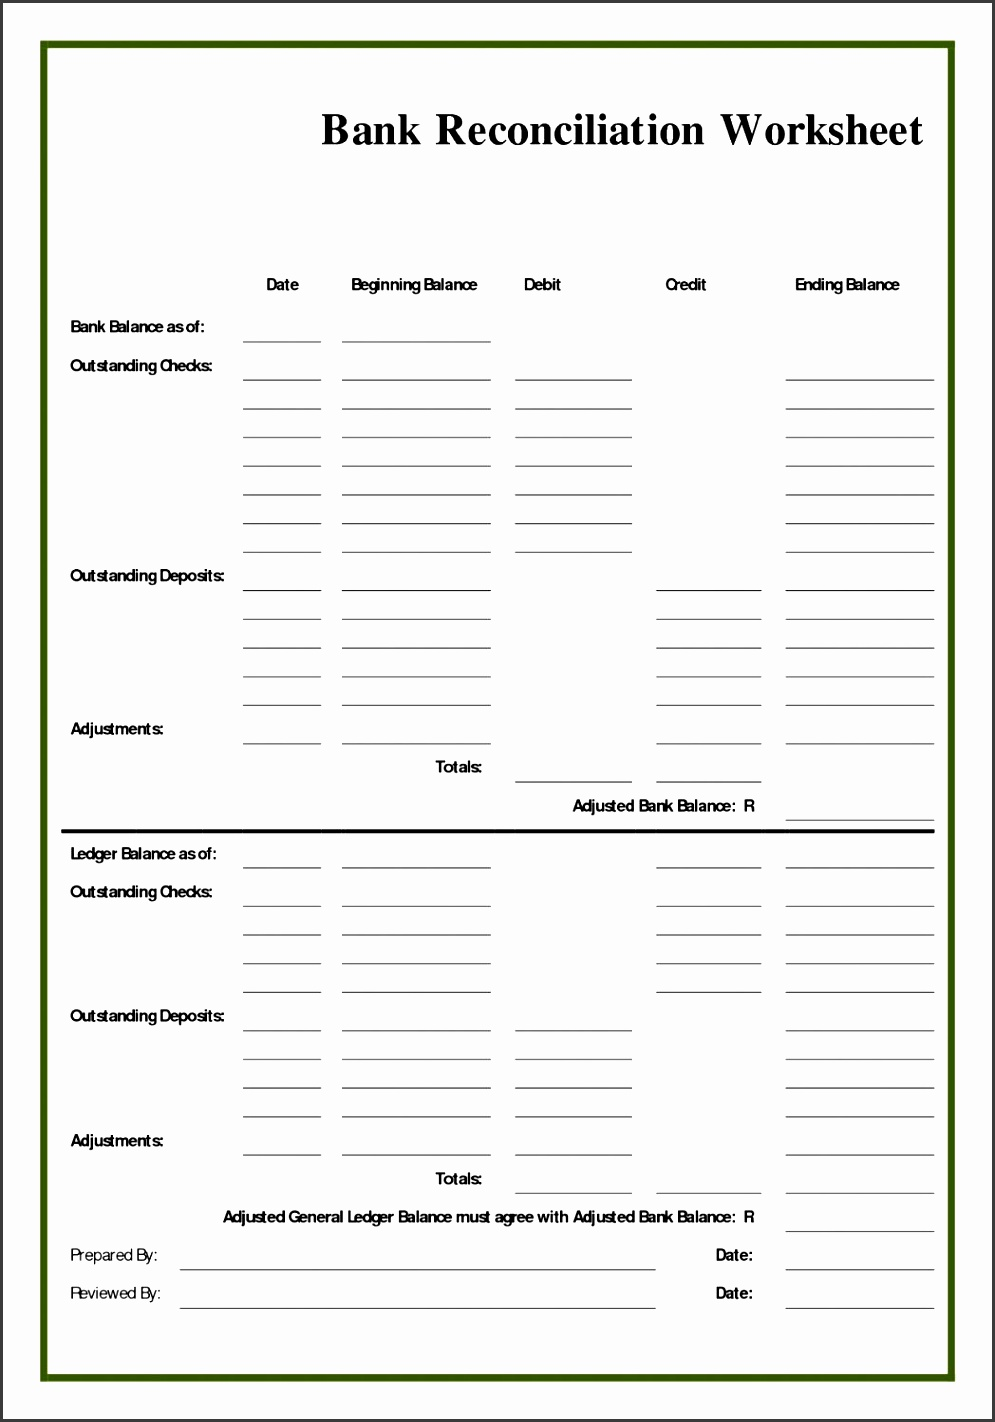 blank bank statement template free affidavit form free sample blank bank reconciliation form best template design images example simple is this youtube f